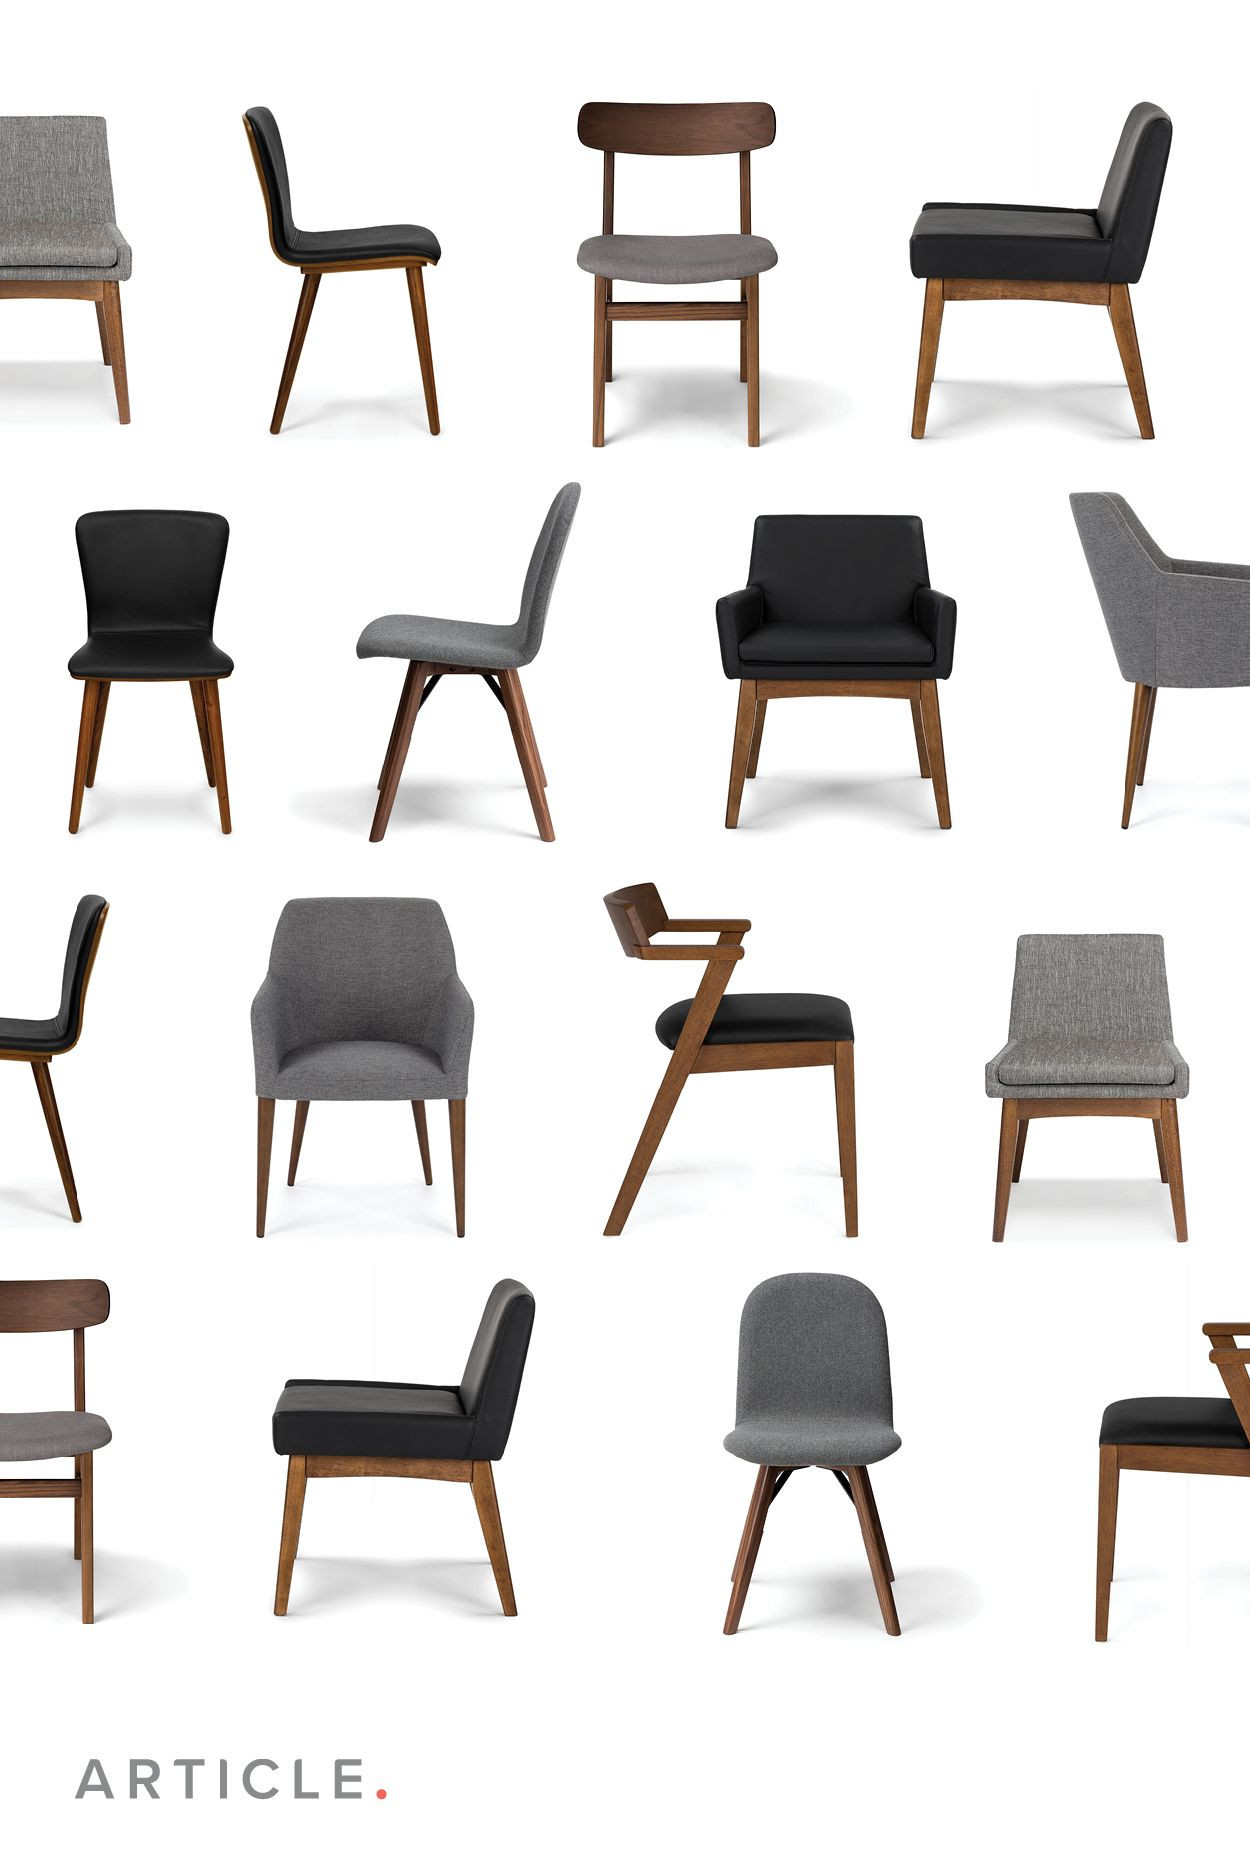 Find The Dining Chair That Fits You And Your Lifestyle Dining Room Chairs Modern Midcentury Modern Dining Chairs Modern Dining Chairs